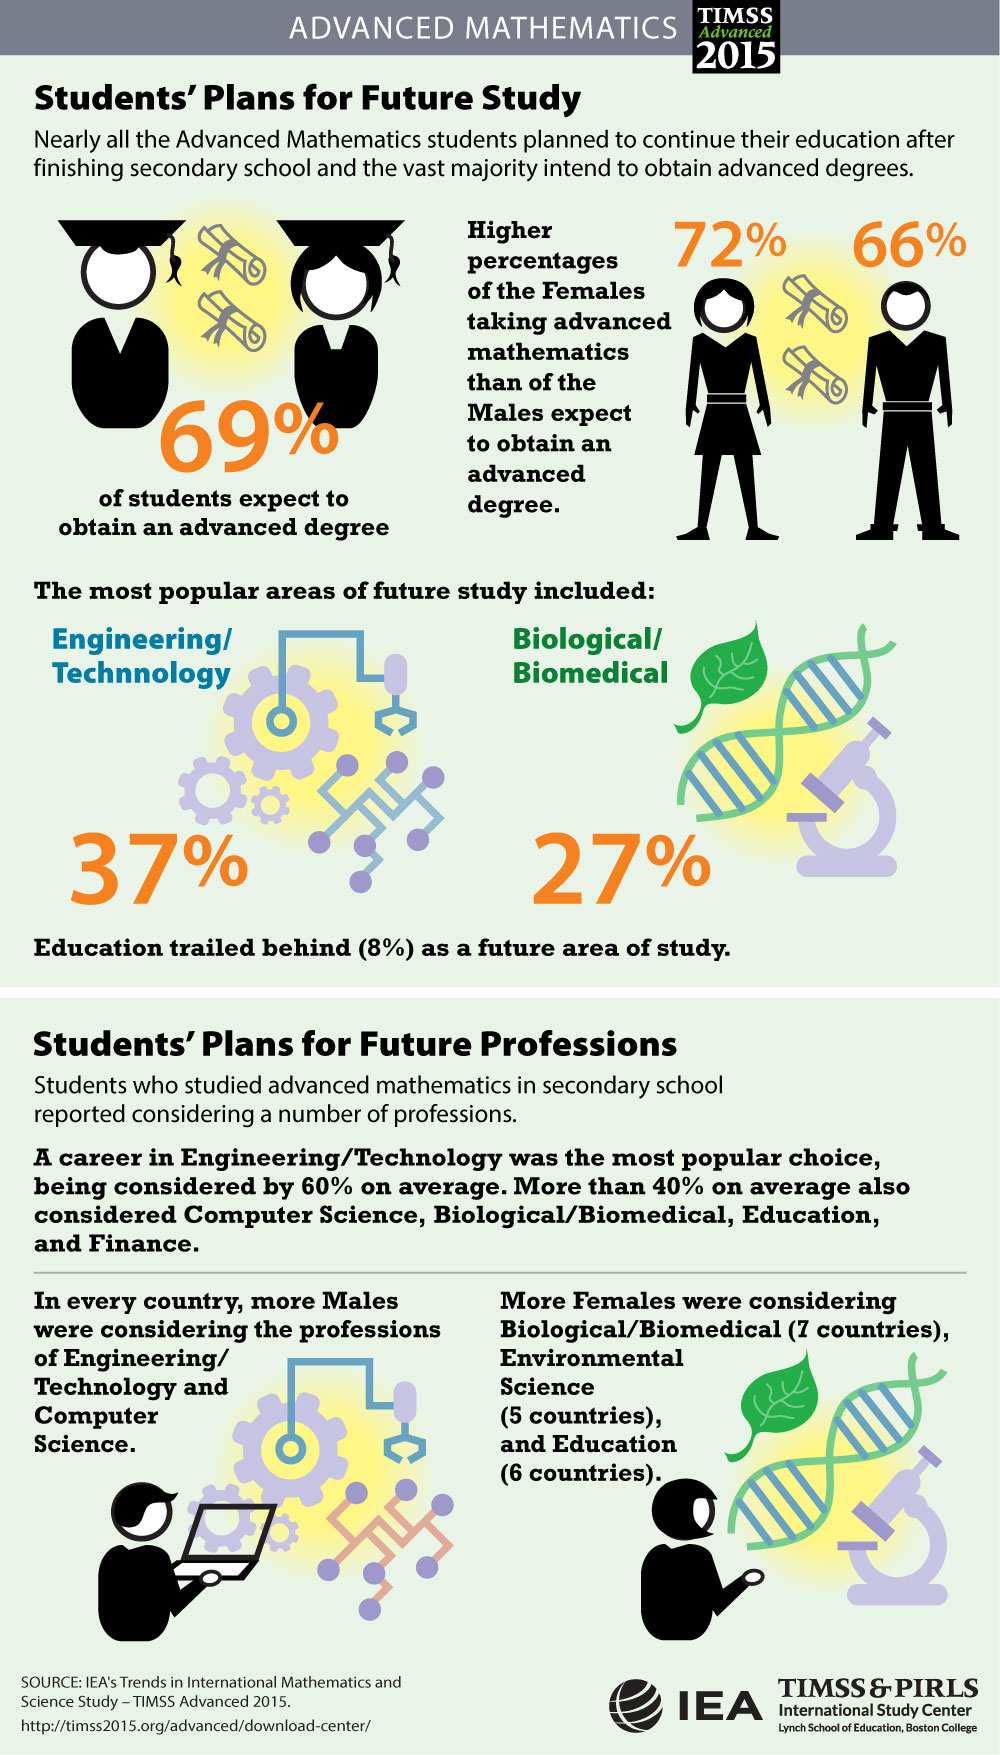 Home Environment and Future Plans Infographic